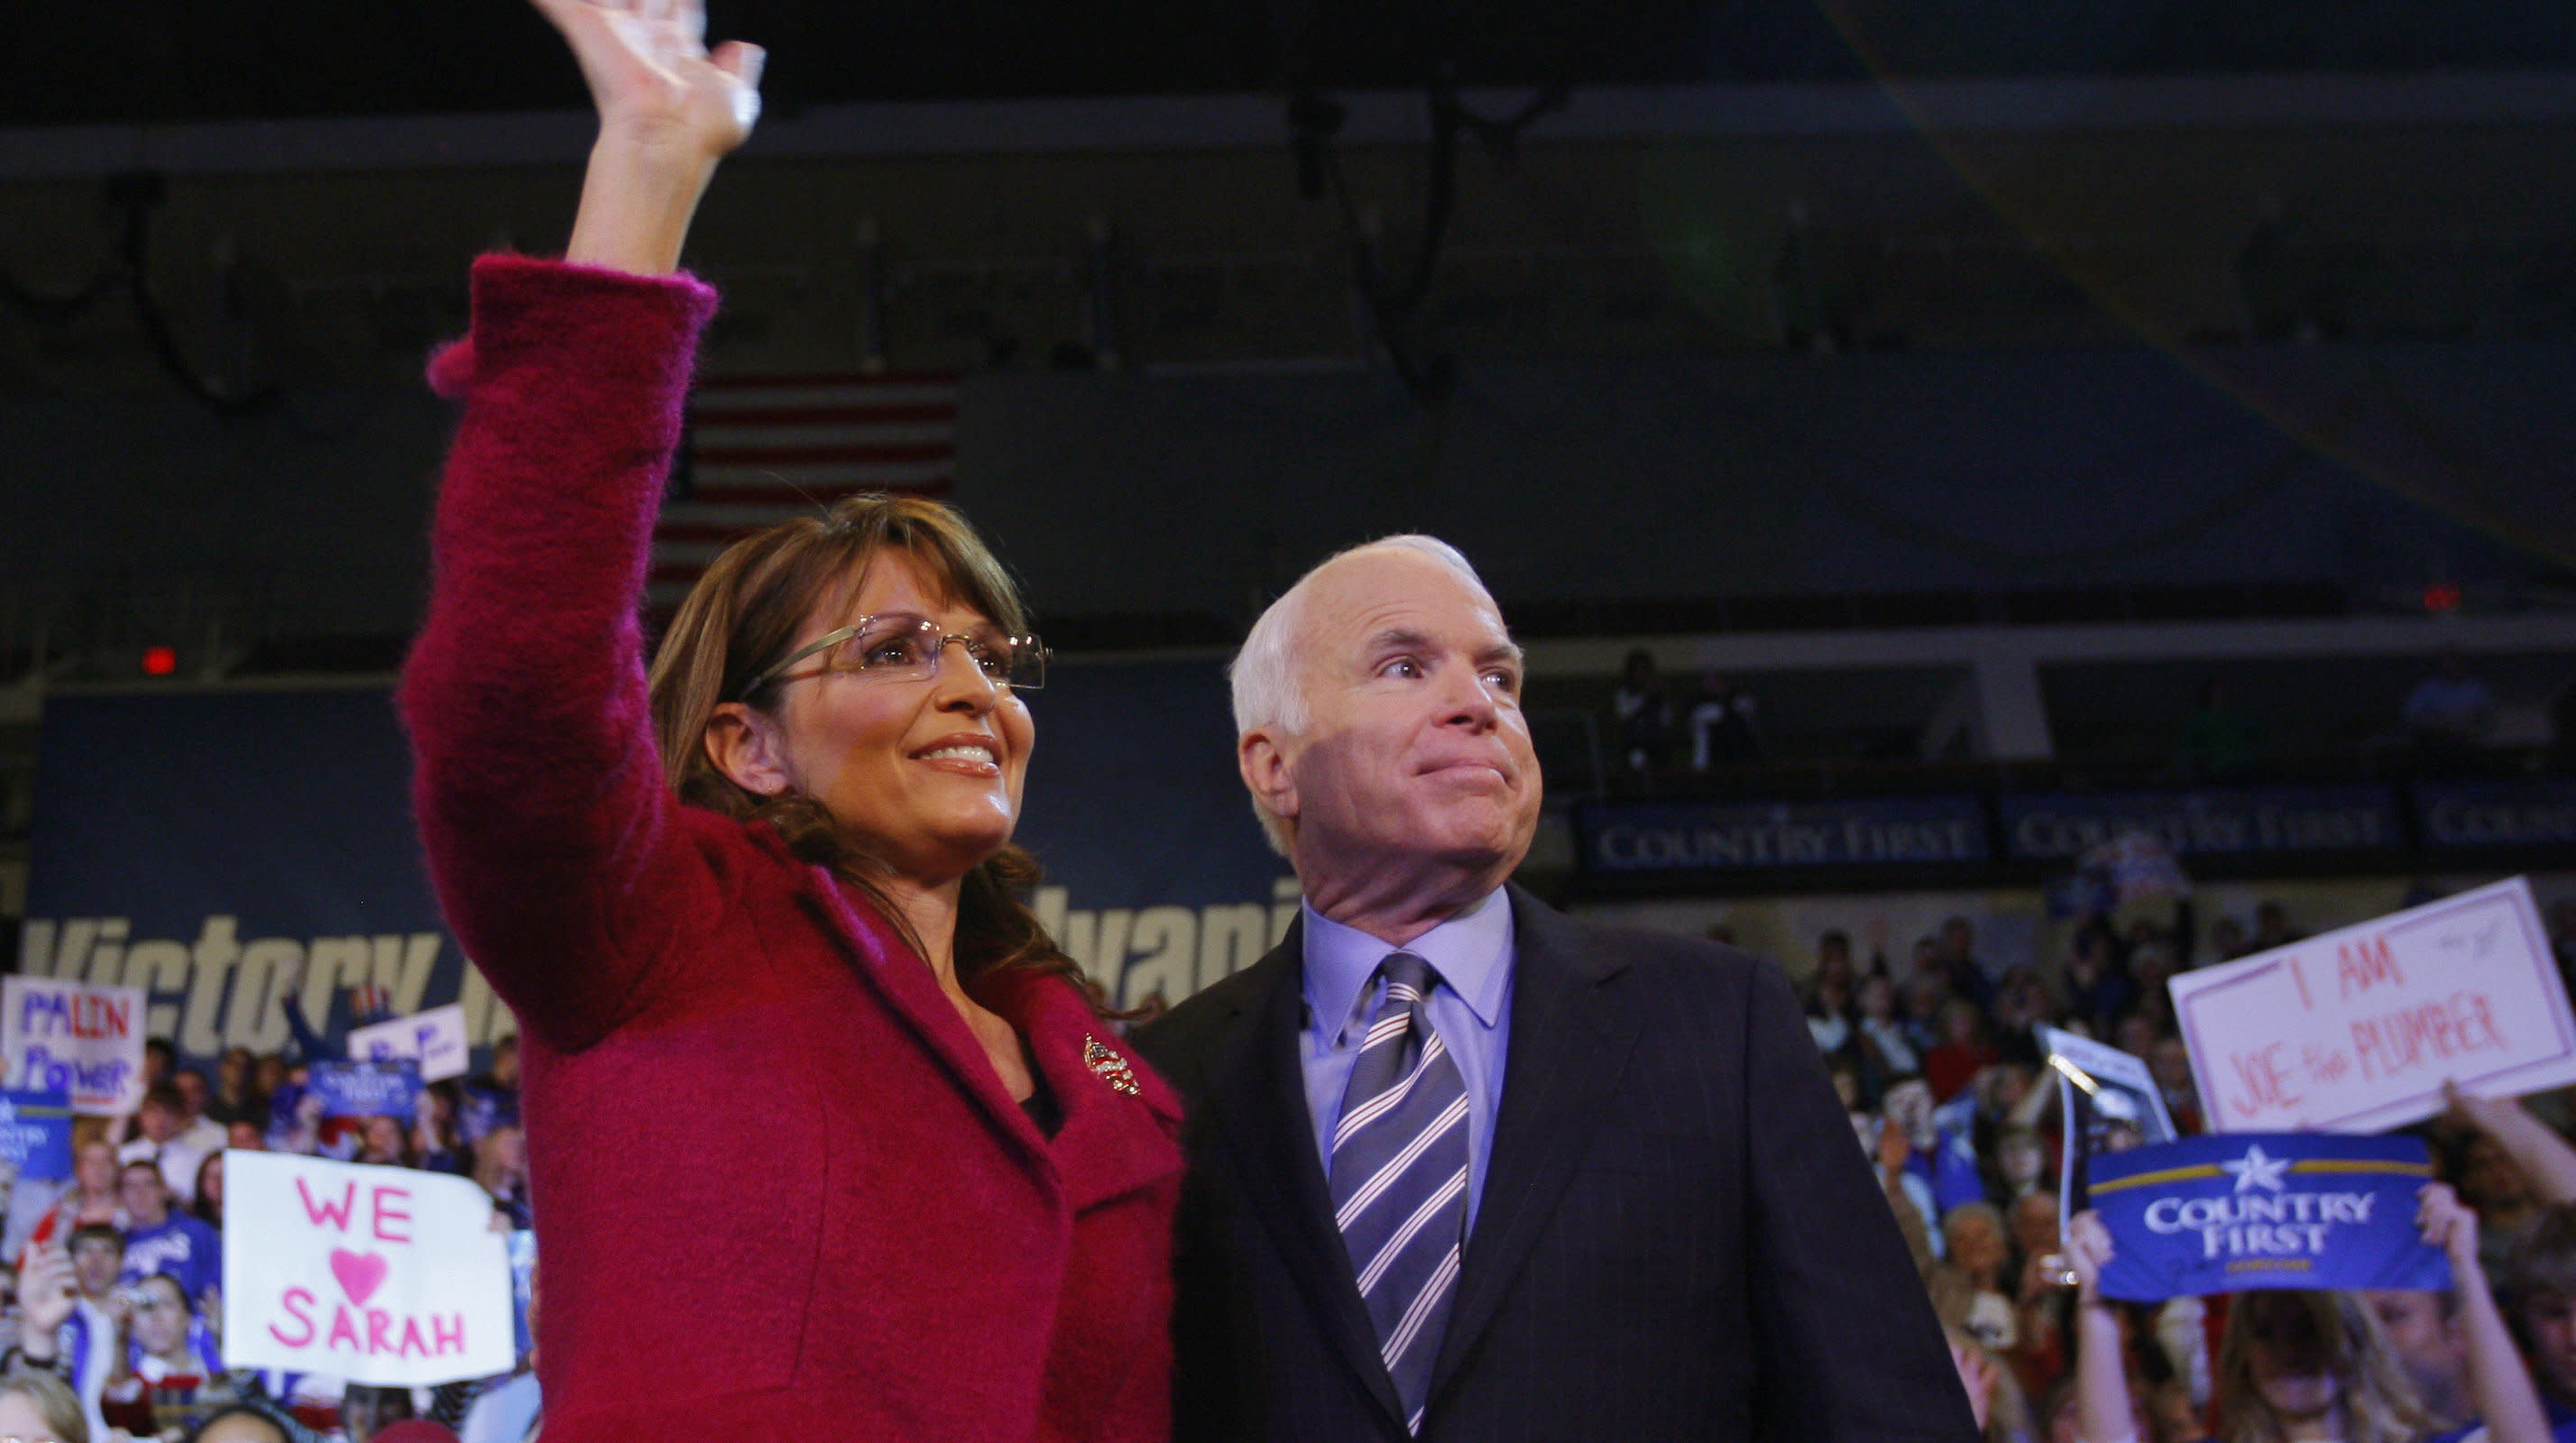 Sarah Palin Reportedly Not Invited To John McCain's Funeral